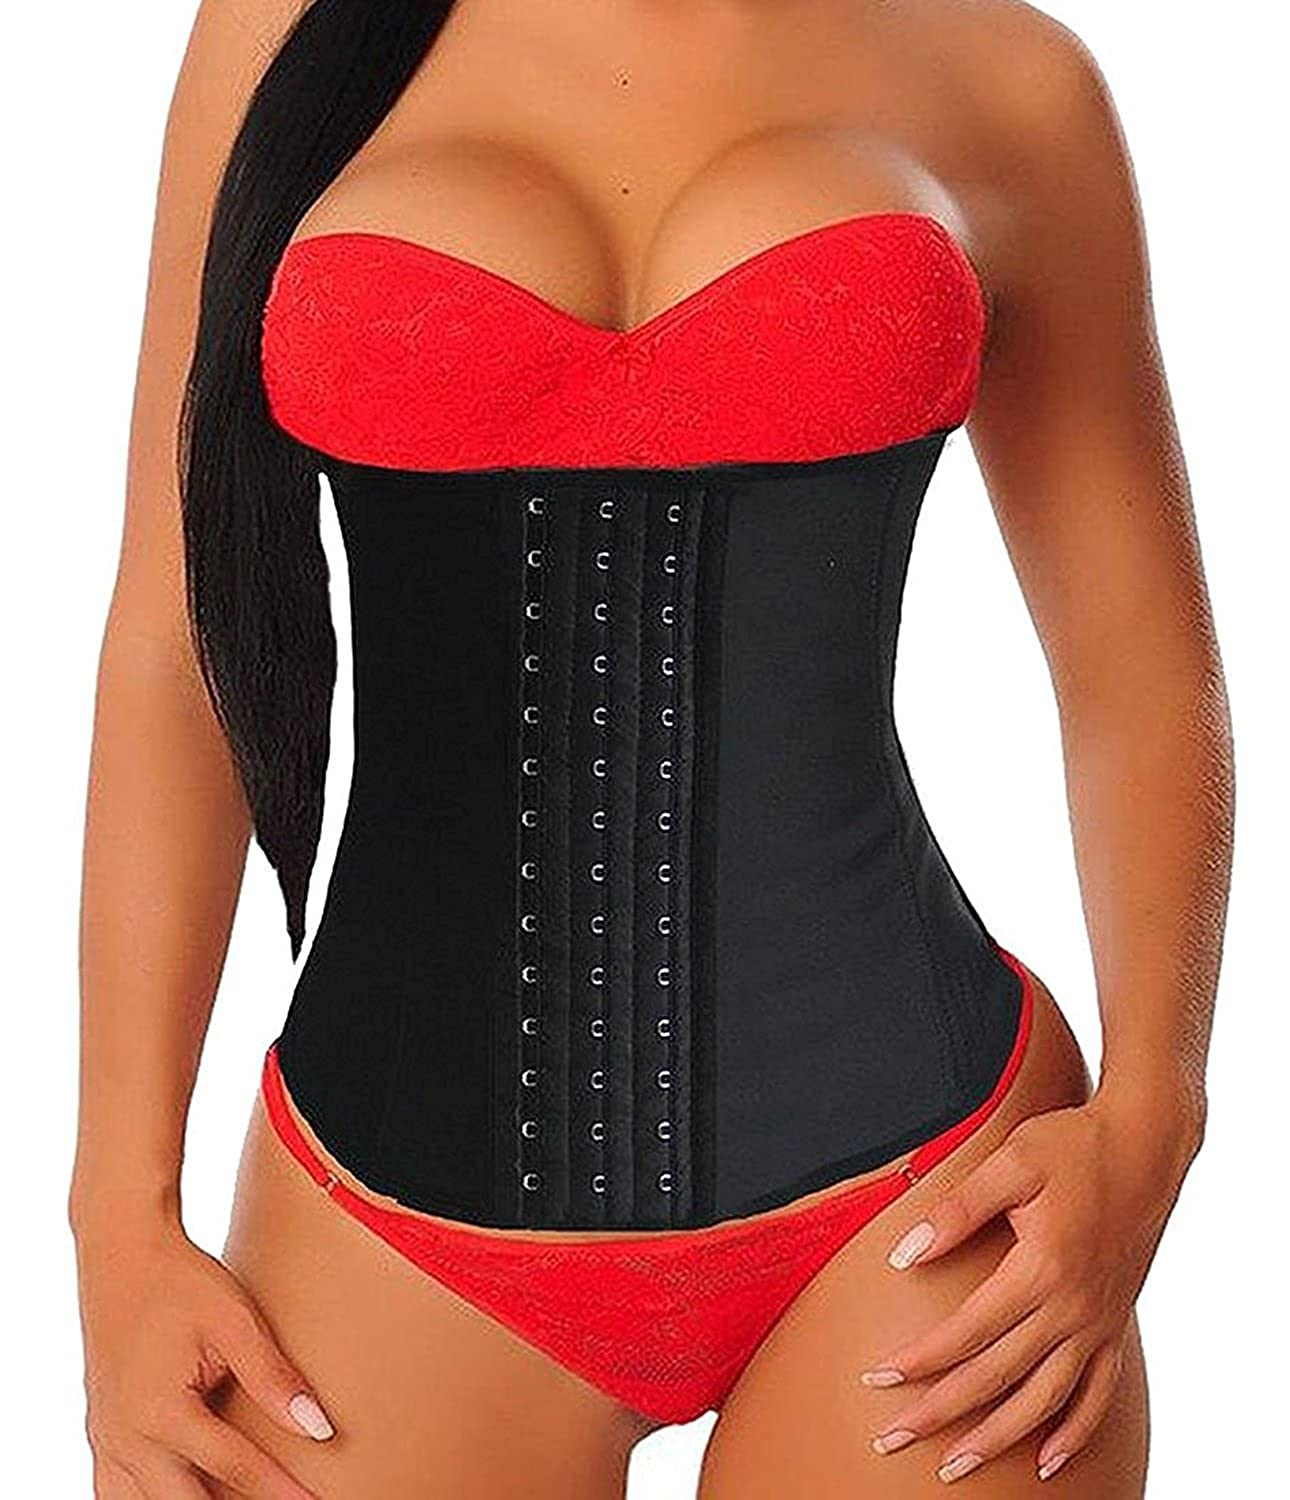 fd85ffa945 YIANNA Women s Underbust Latex Sport Girdle Waist Trainer Corsets Hourglass  Body Shaper at Amazon Women s Clothing store